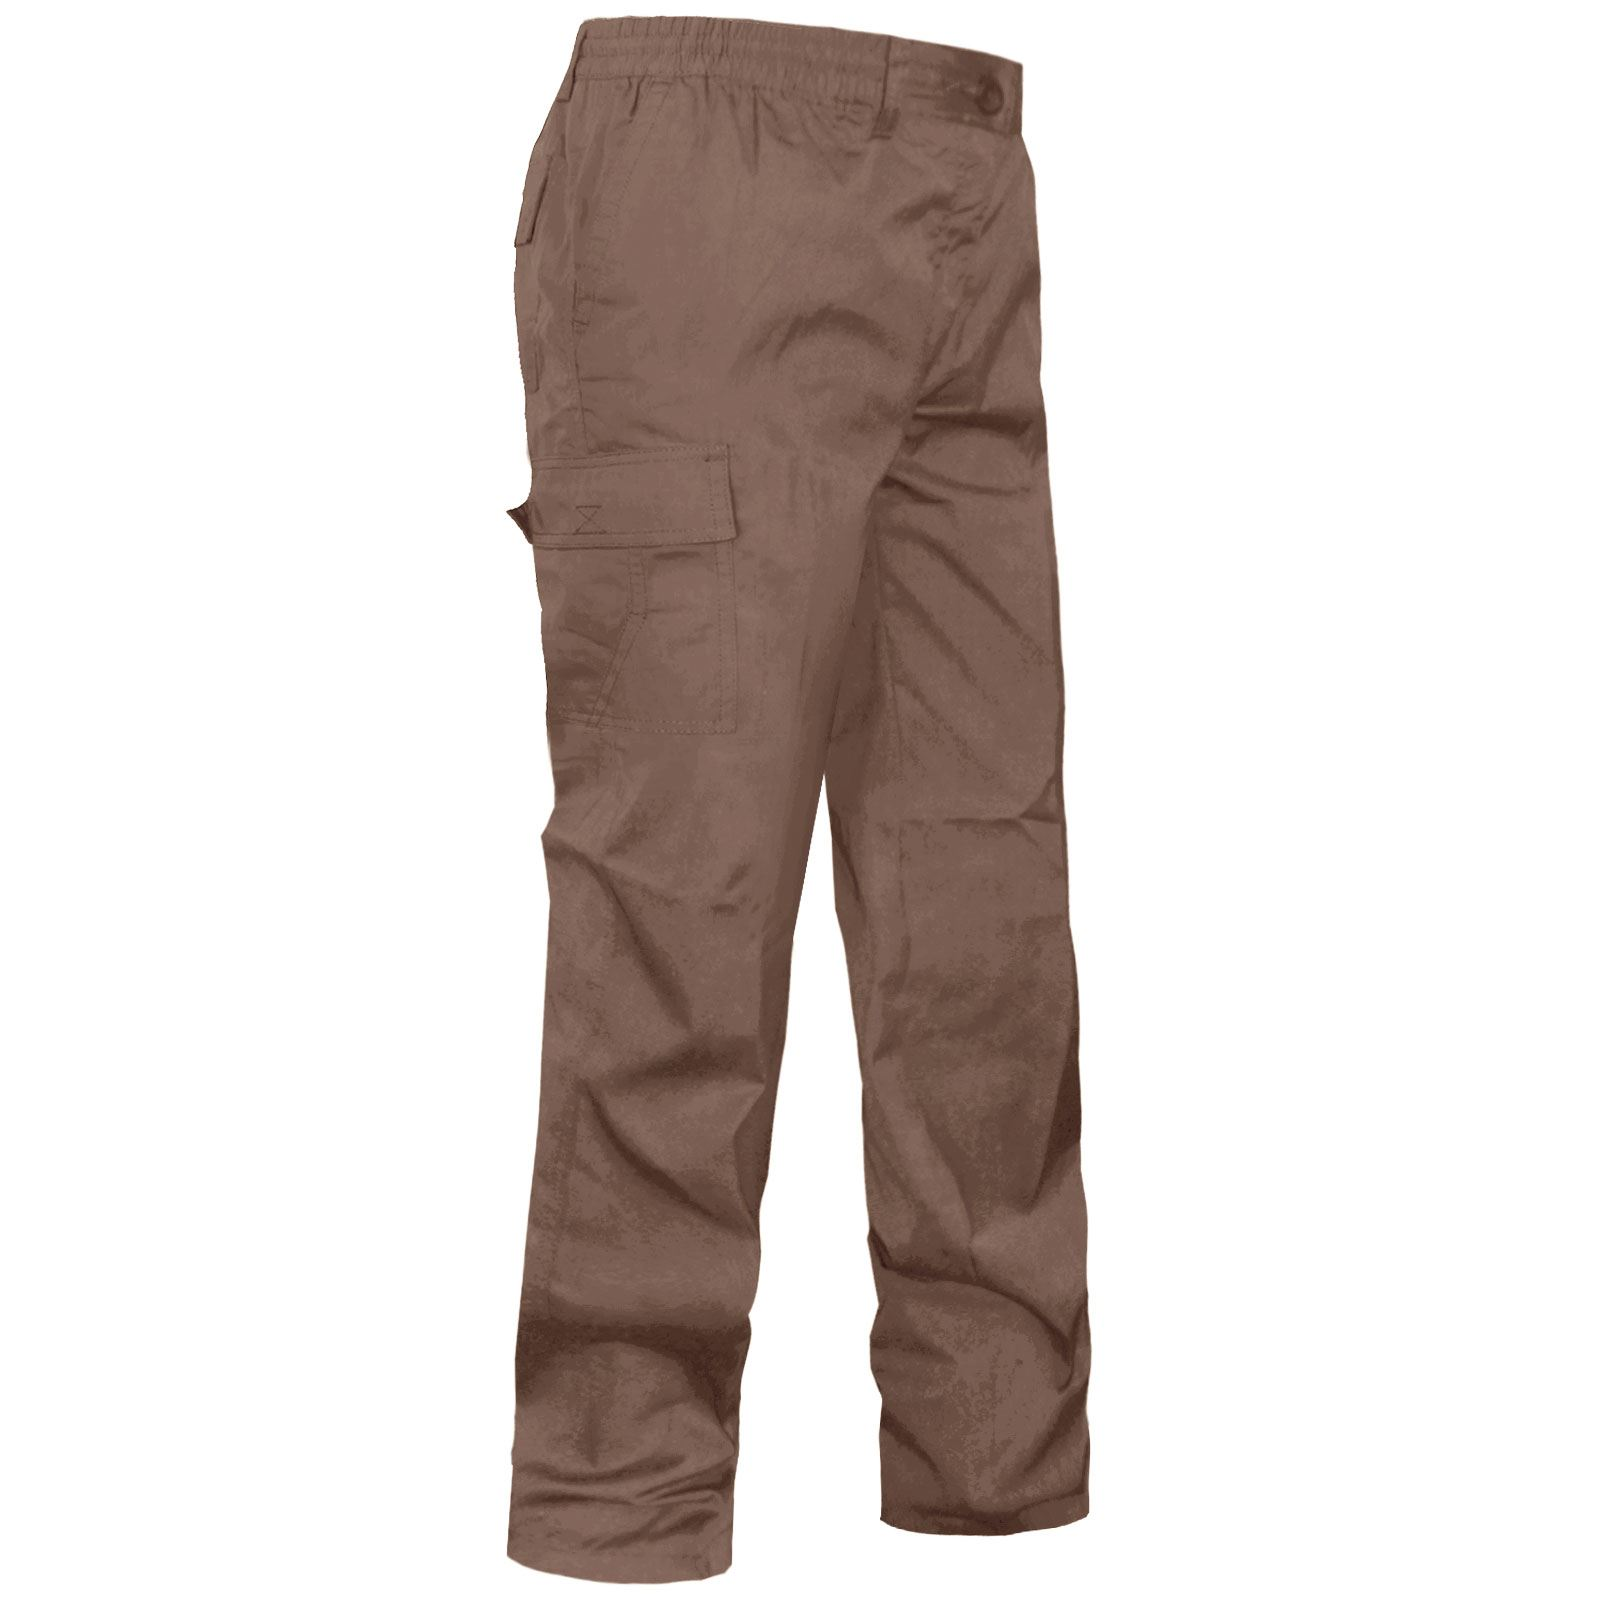 Buy low price, high quality elasticated bottom trousers with worldwide shipping on jelly555.ml